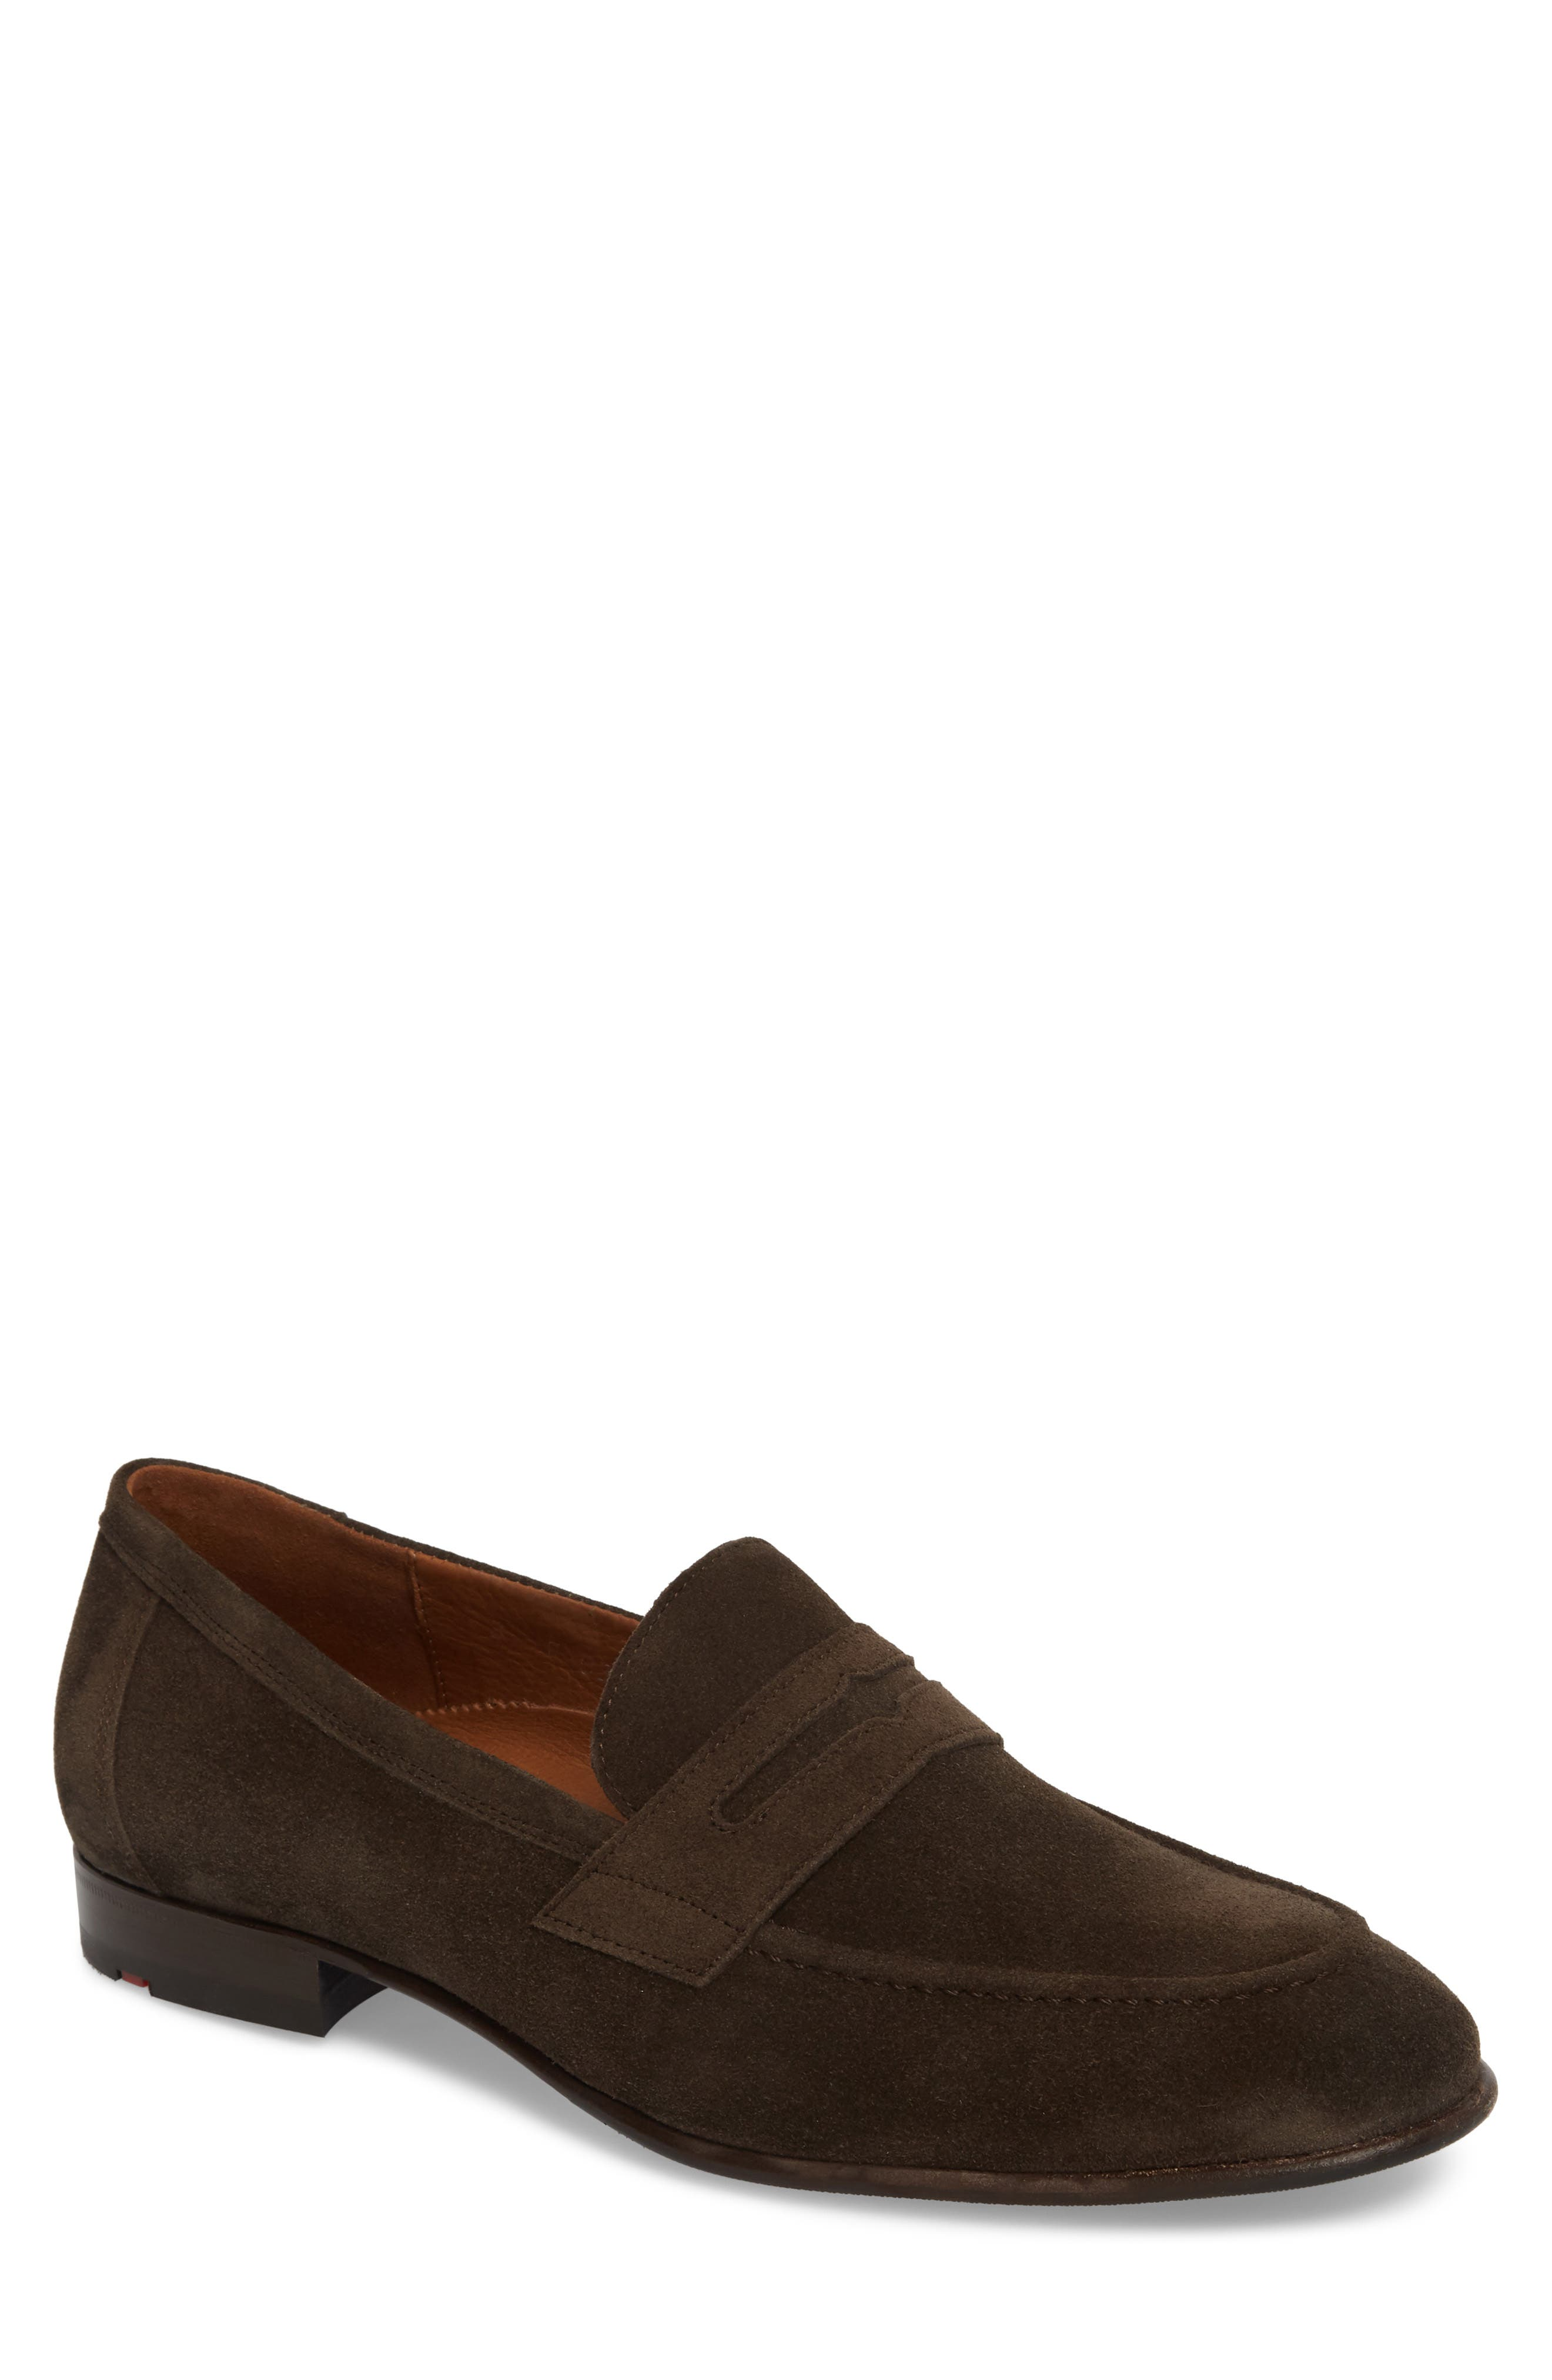 Paxton Penny Loafer,                             Main thumbnail 1, color,                             BROWN SUEDE